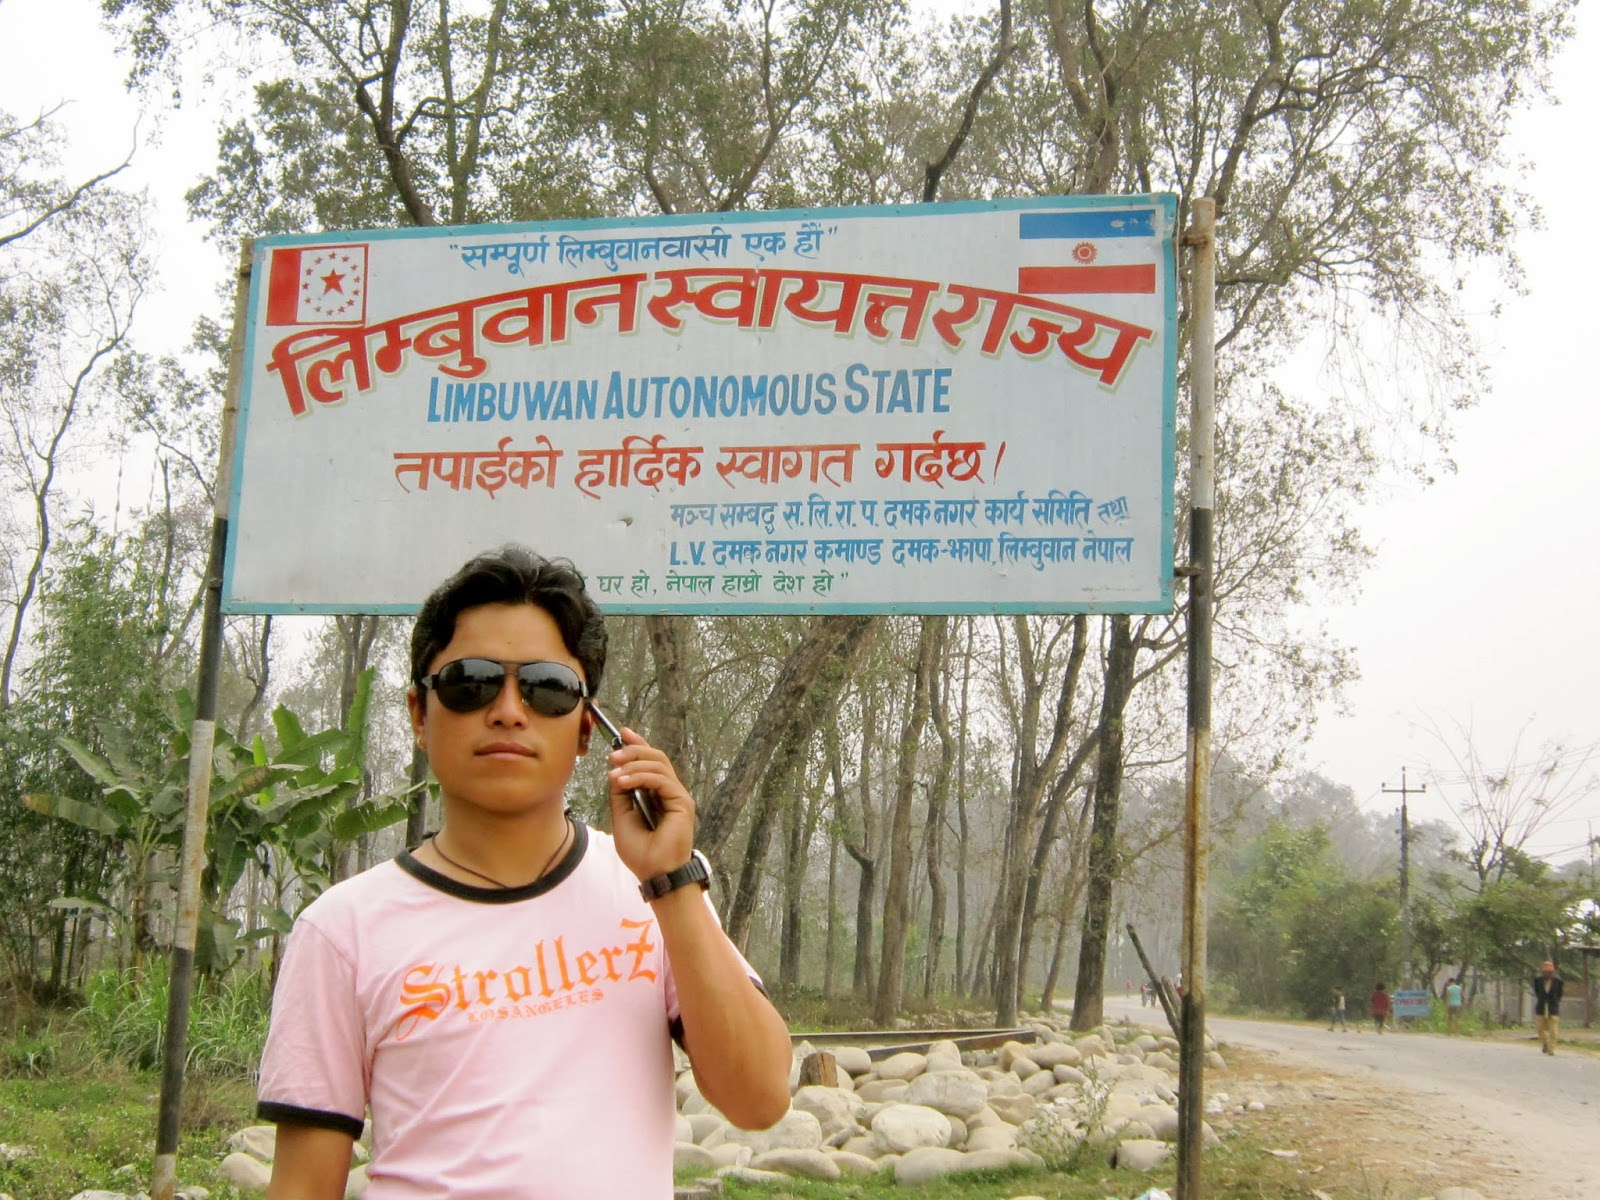 nepali essay About tihar : the nepali festival tihar is also known by many names such as dipawali or bhai tika or laxmi puja or as a festival of lights it is a five-days festival.